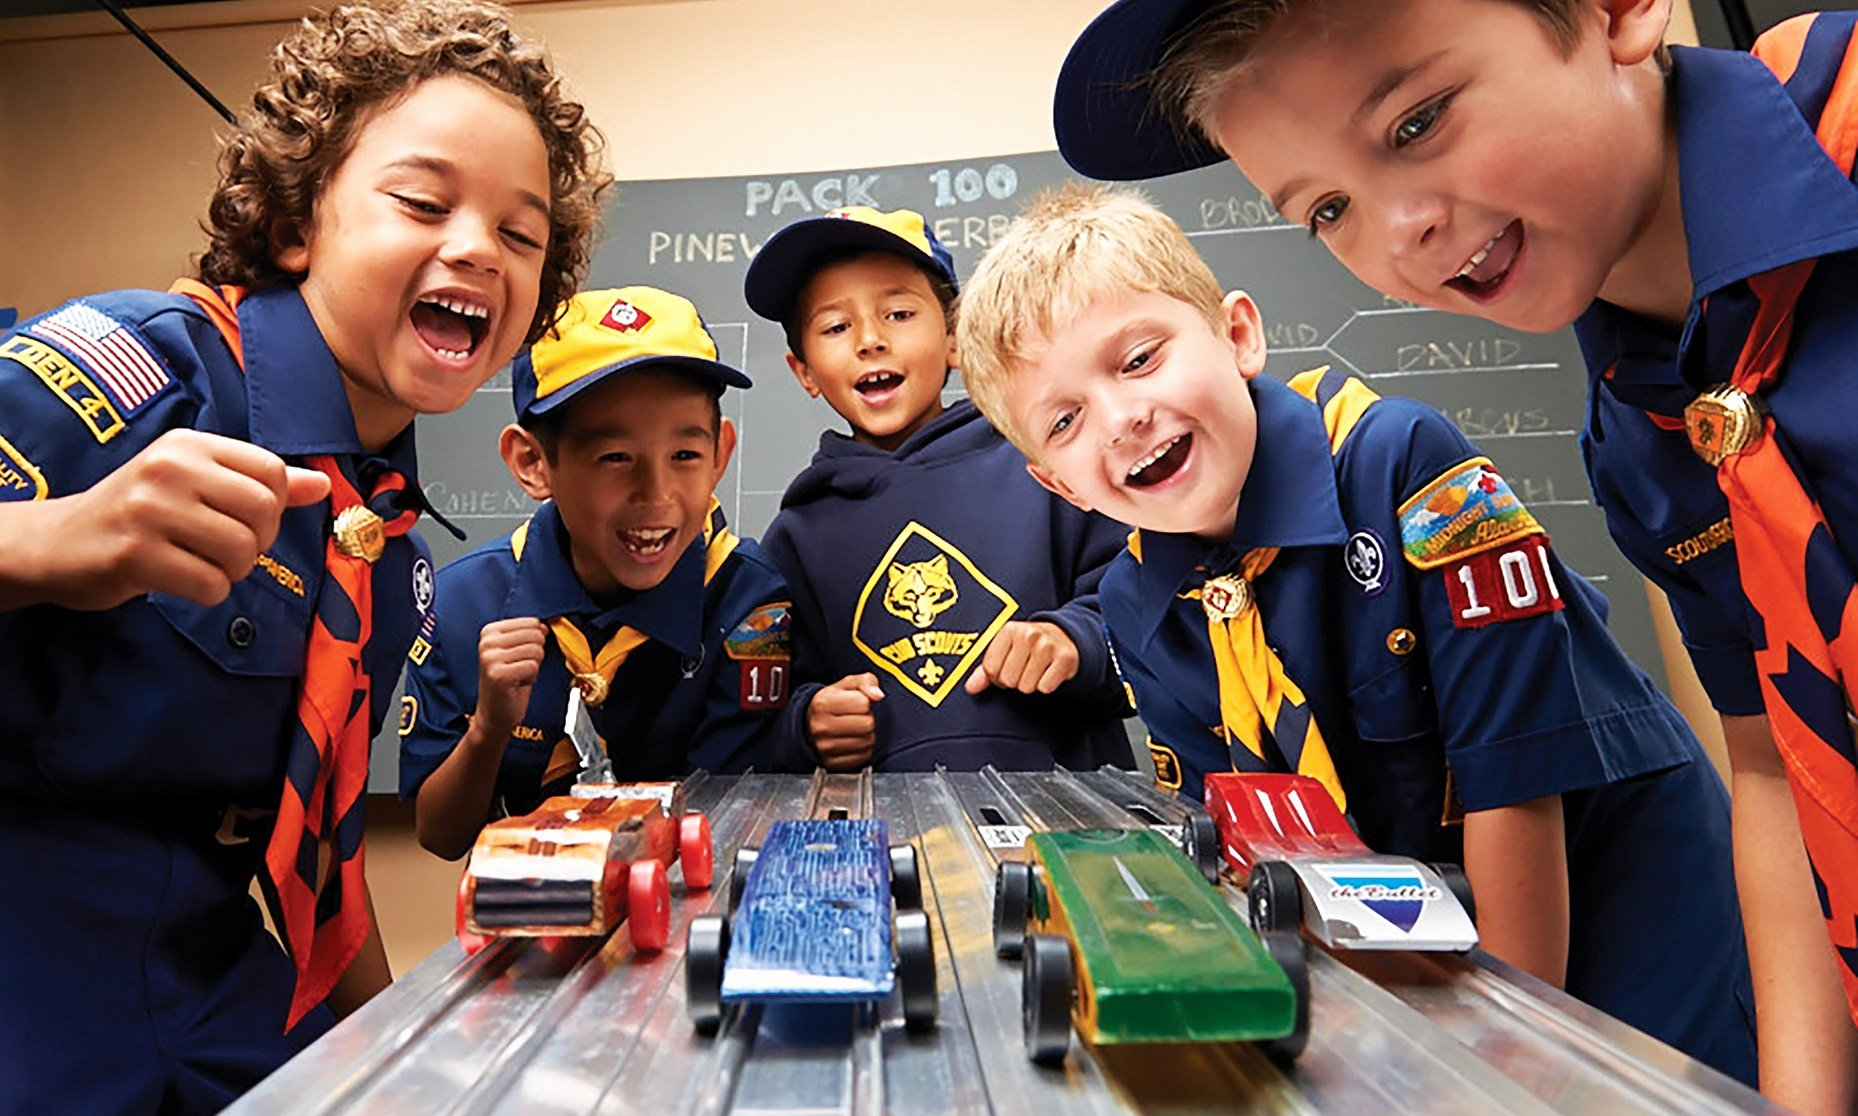 Pinewood Derby Car Plans Free Best Of 20 Tips for Planning the Best Pinewood Derby